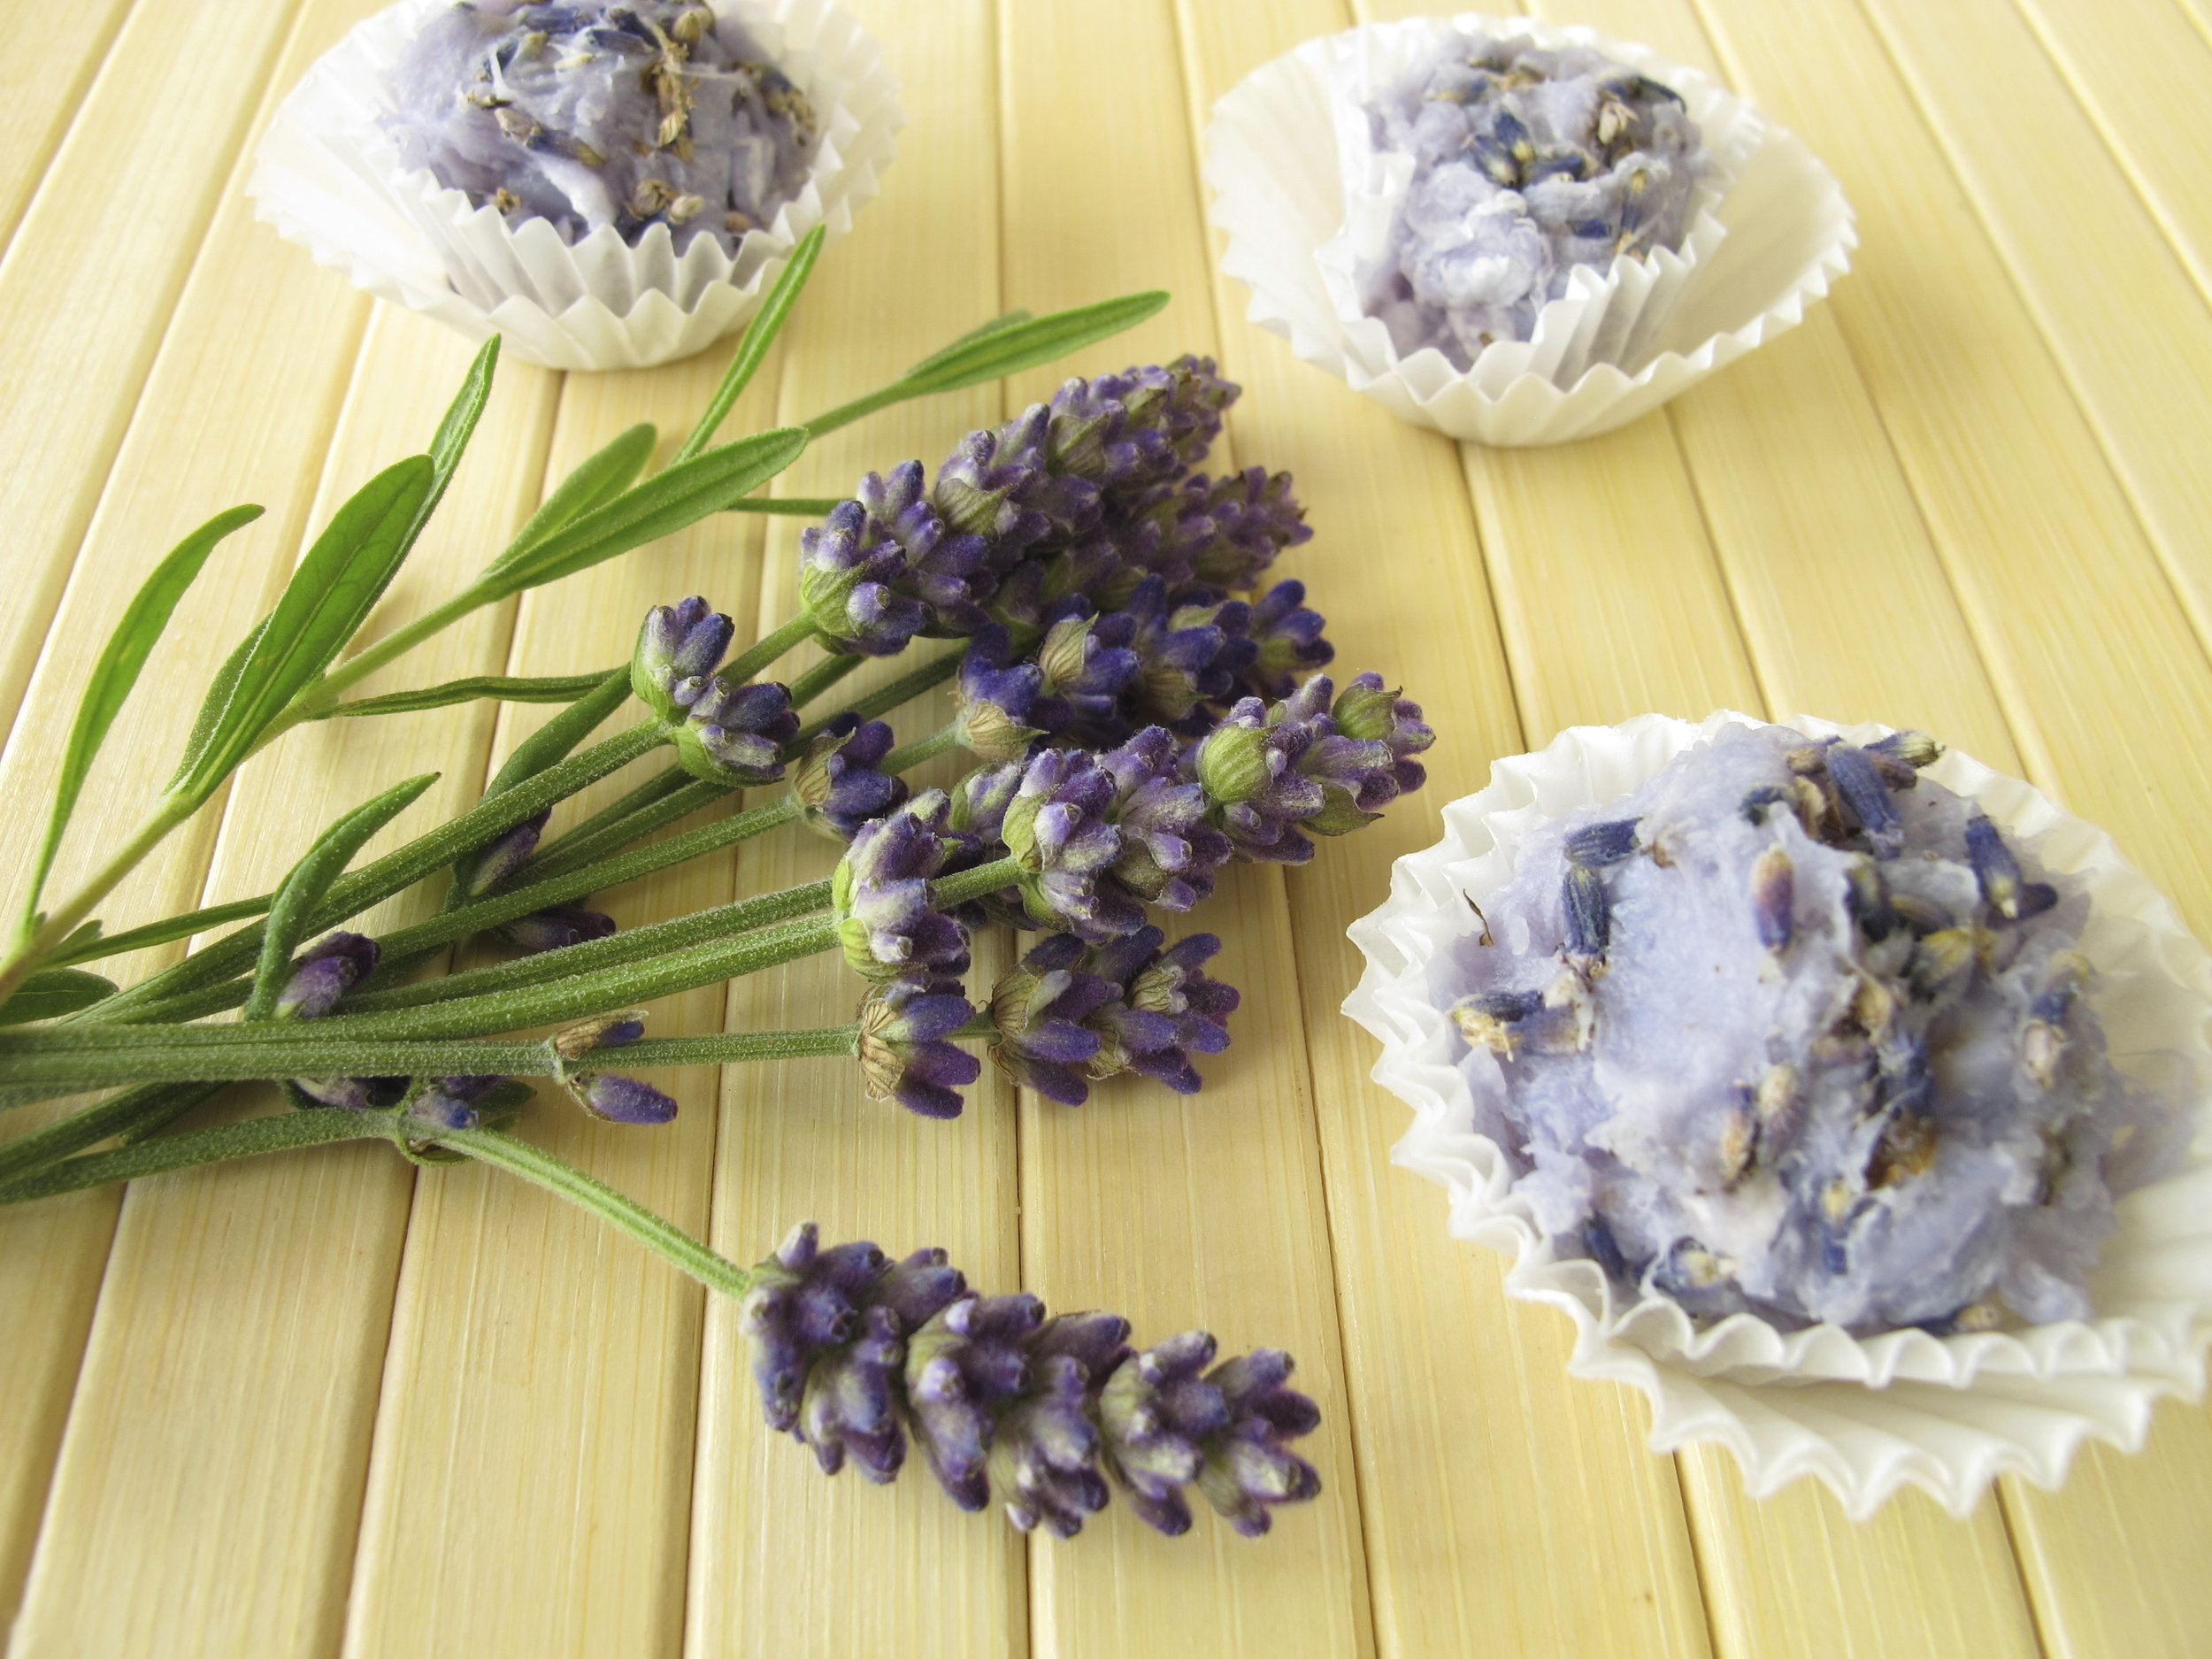 Homemade-soap-pralines-with-lavender-000026149820_Large.jpg